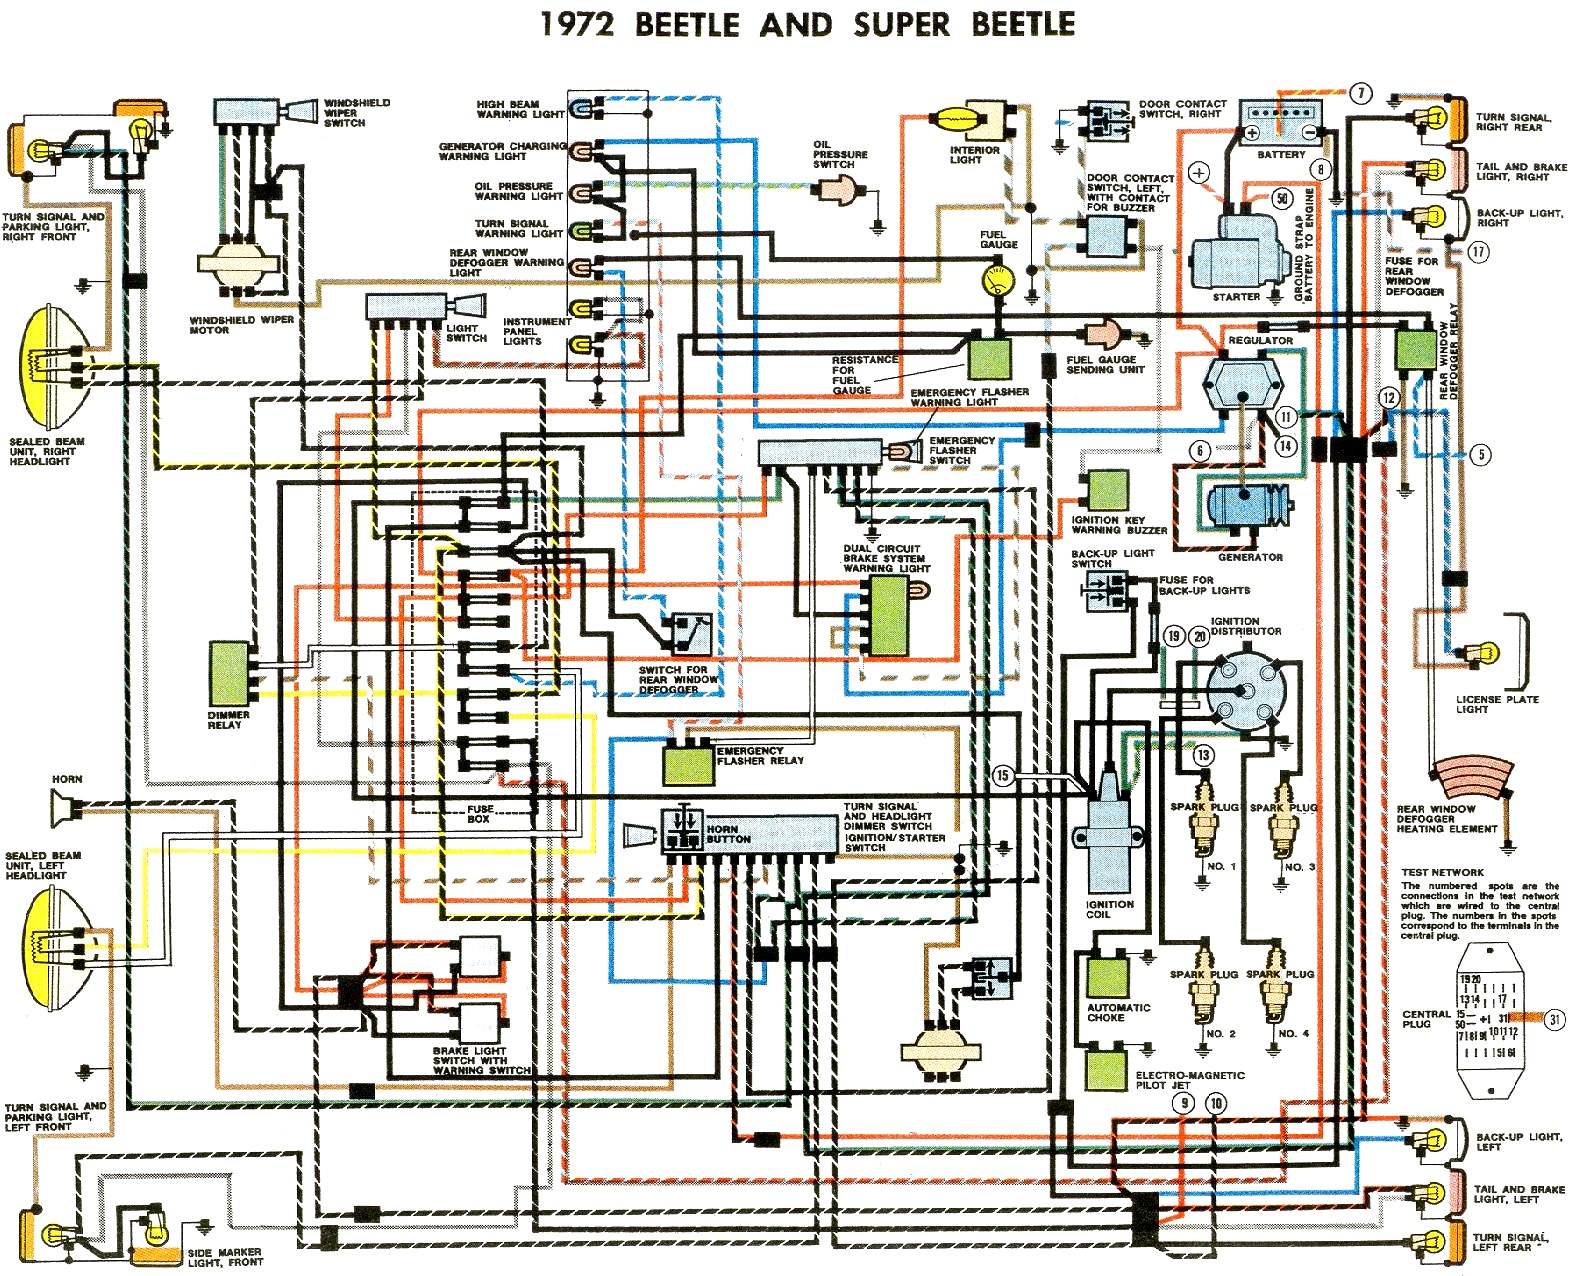 1972 Vw Super Beetle Wiring Diagram Will Be A Thing 1981 Thegoldenbug Com Rh 1971